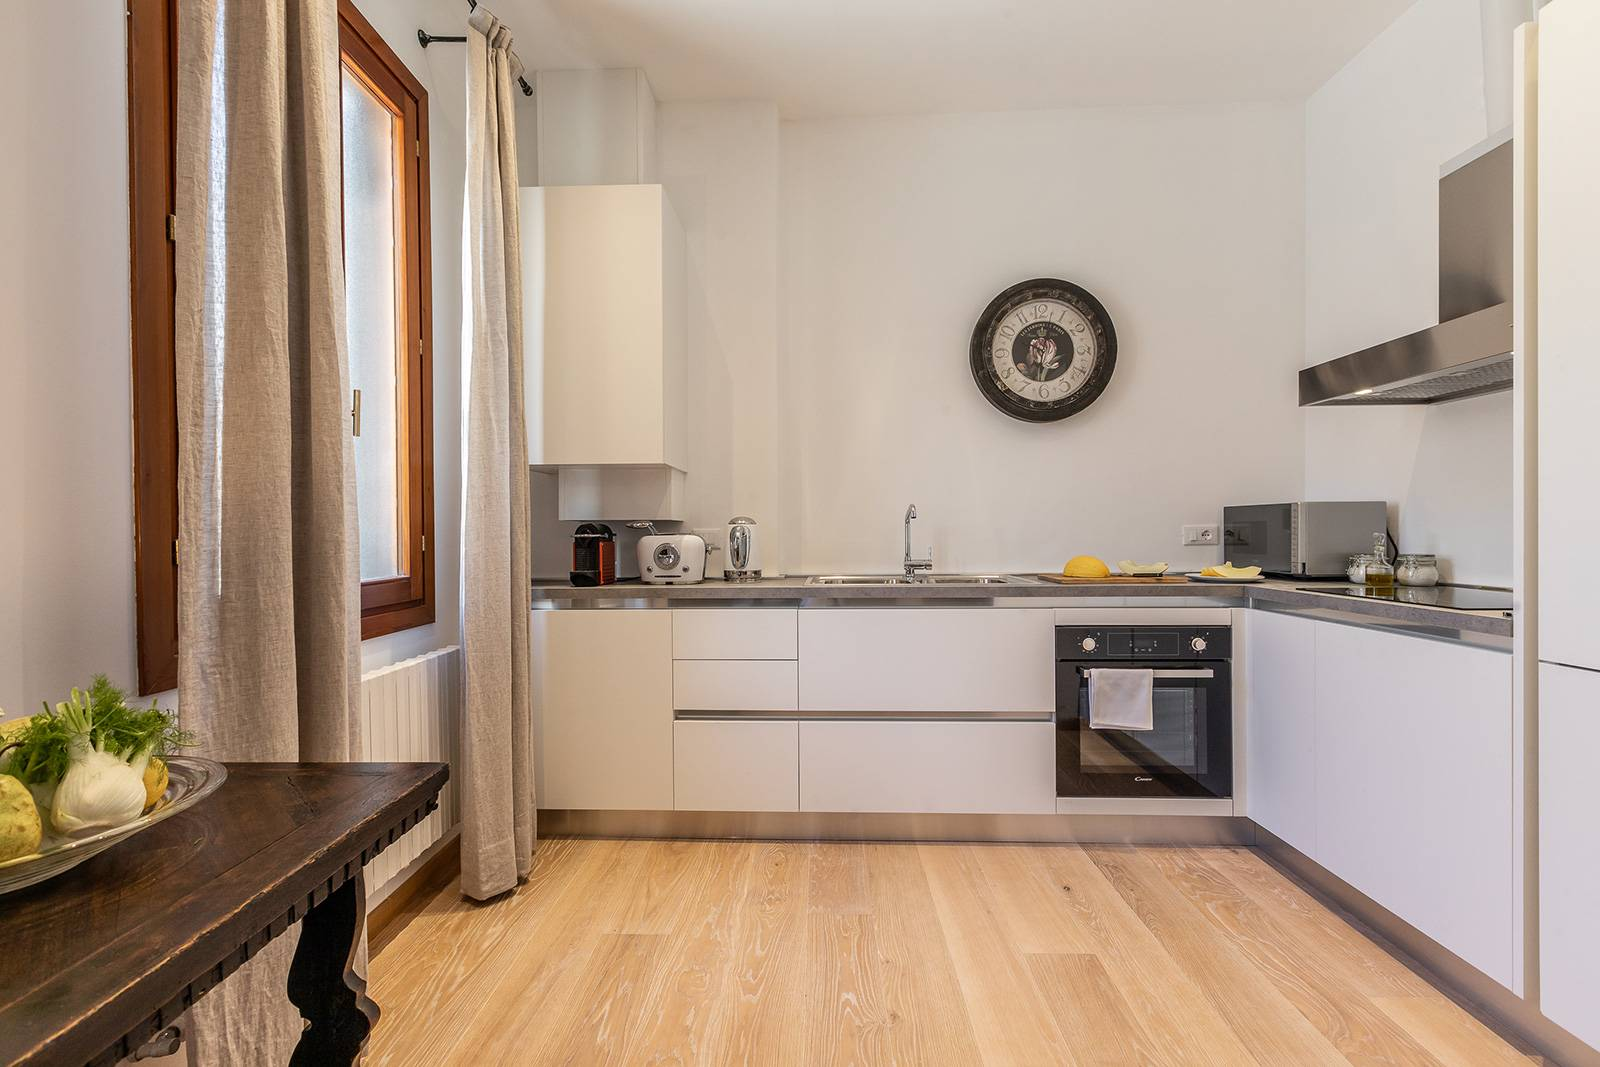 brand new and spacious kitchen